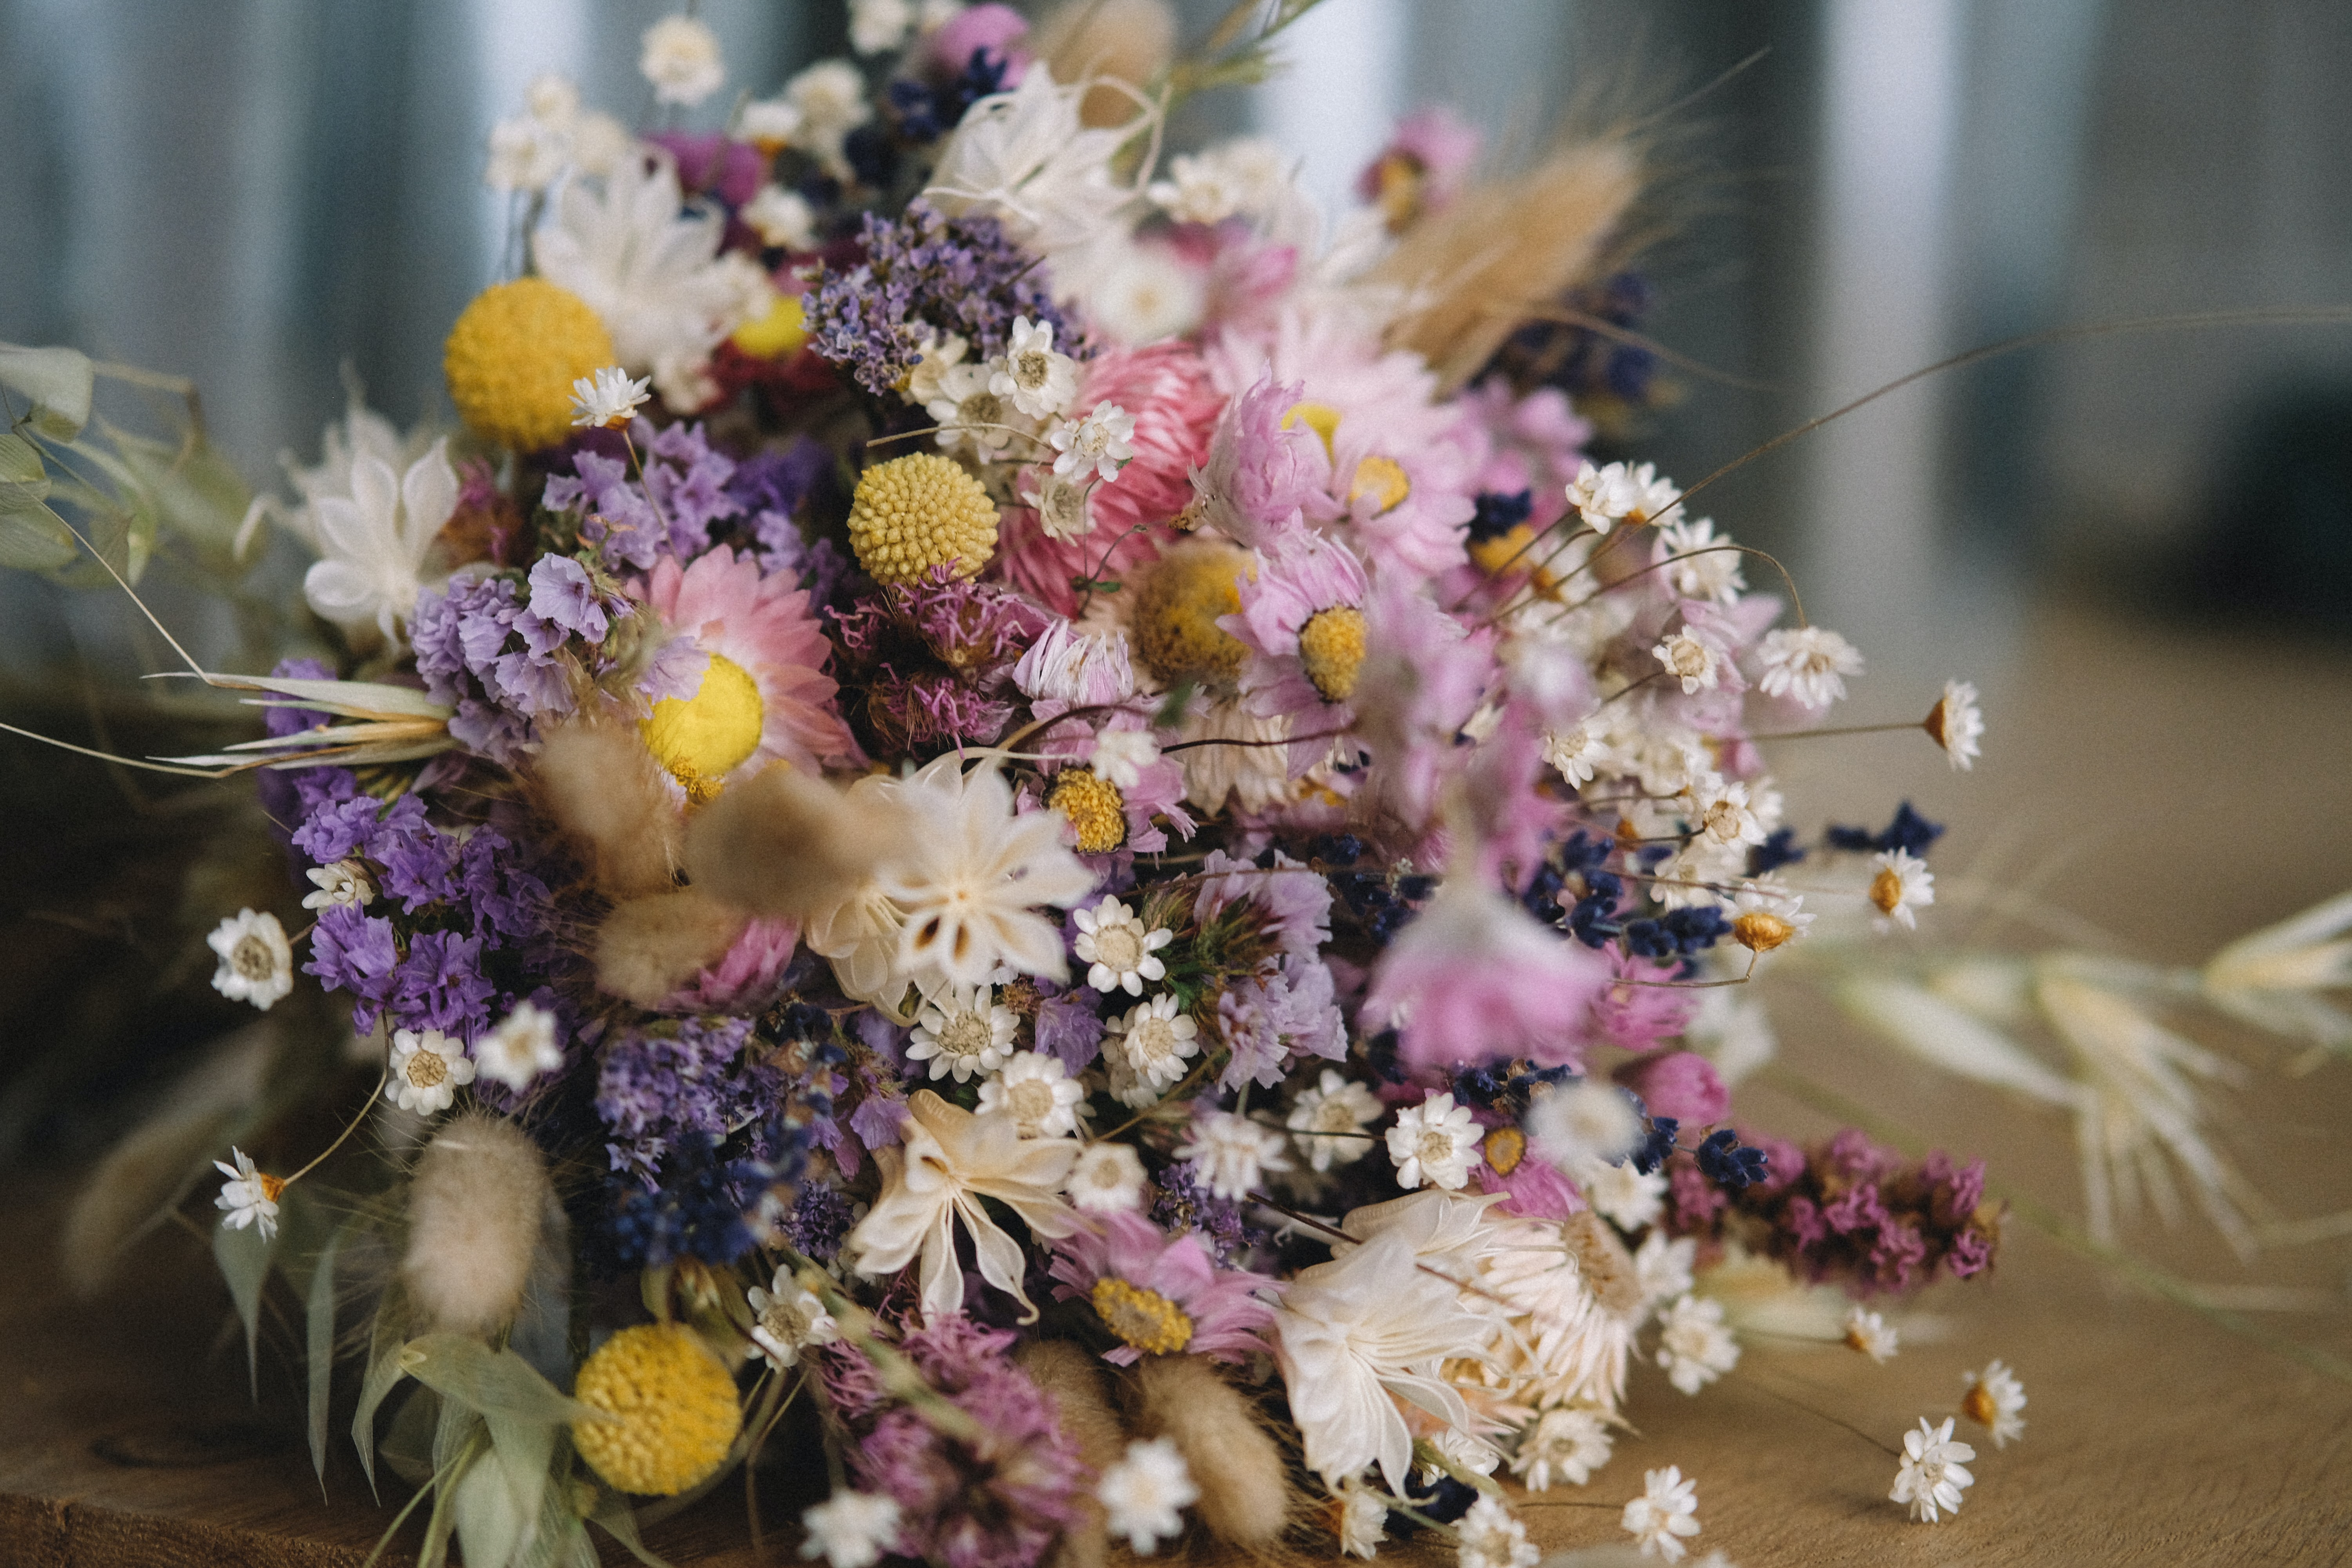 bouquet of white, purple, and pink petaled flowers